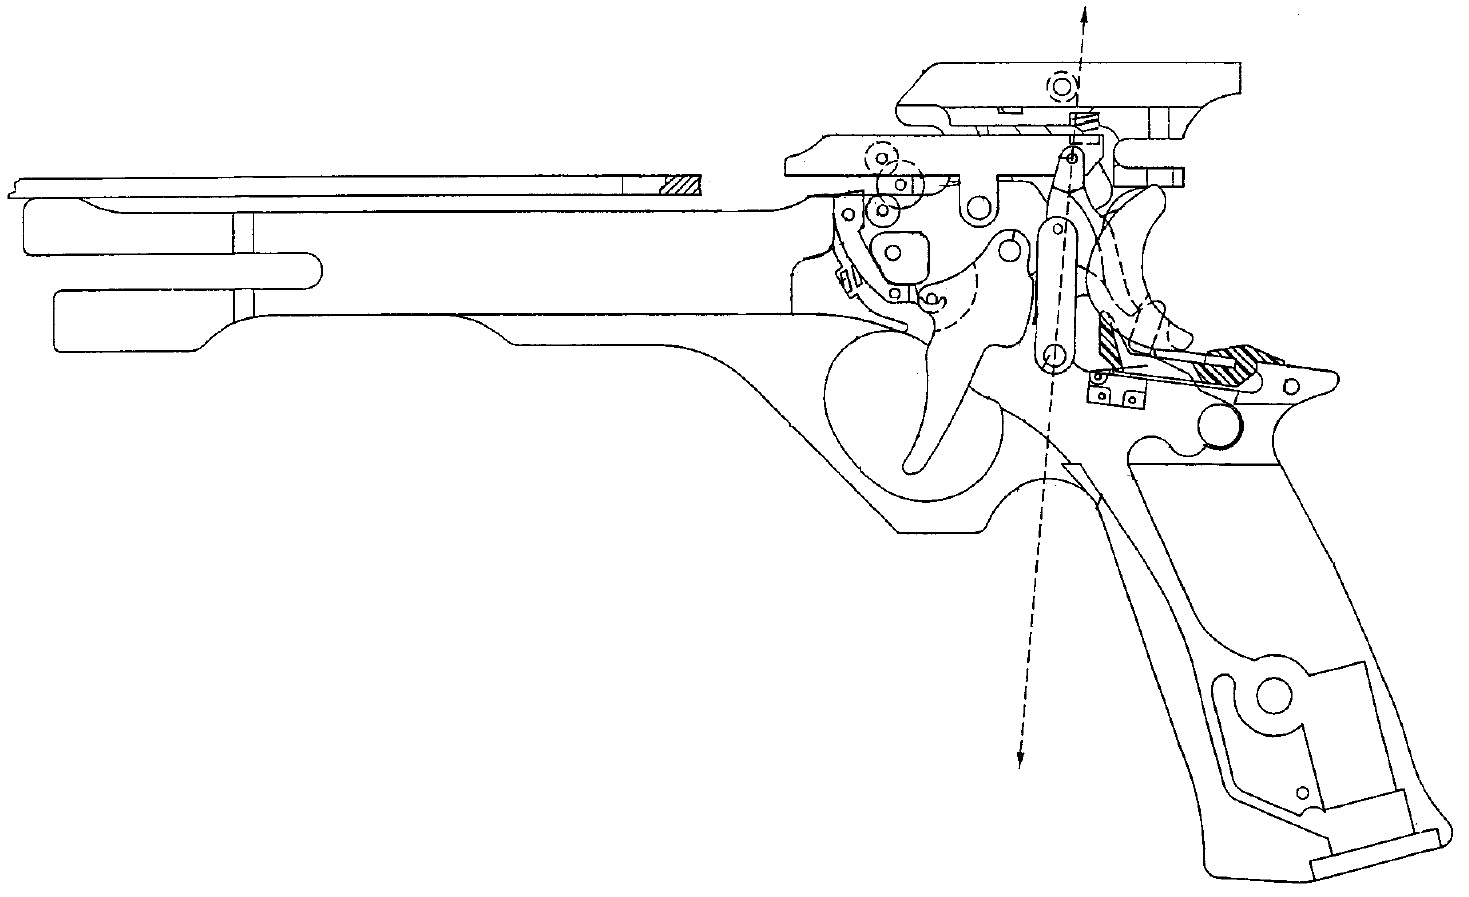 Pistol Crossbow Trigger Design